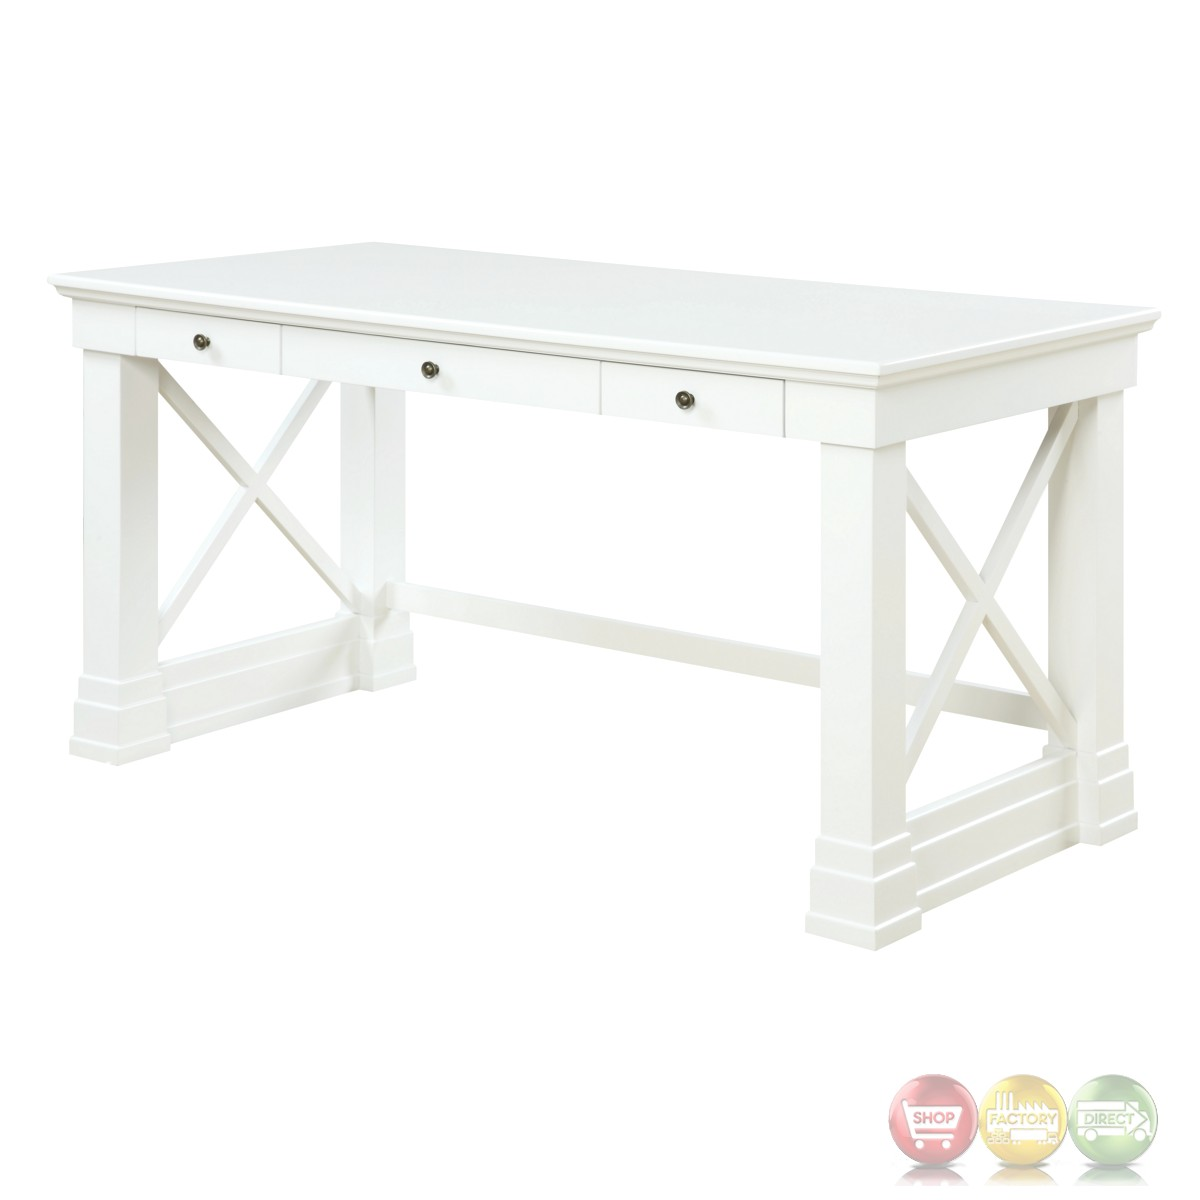 writing desk white Lowest price online on all writing desk in white - 9178096.